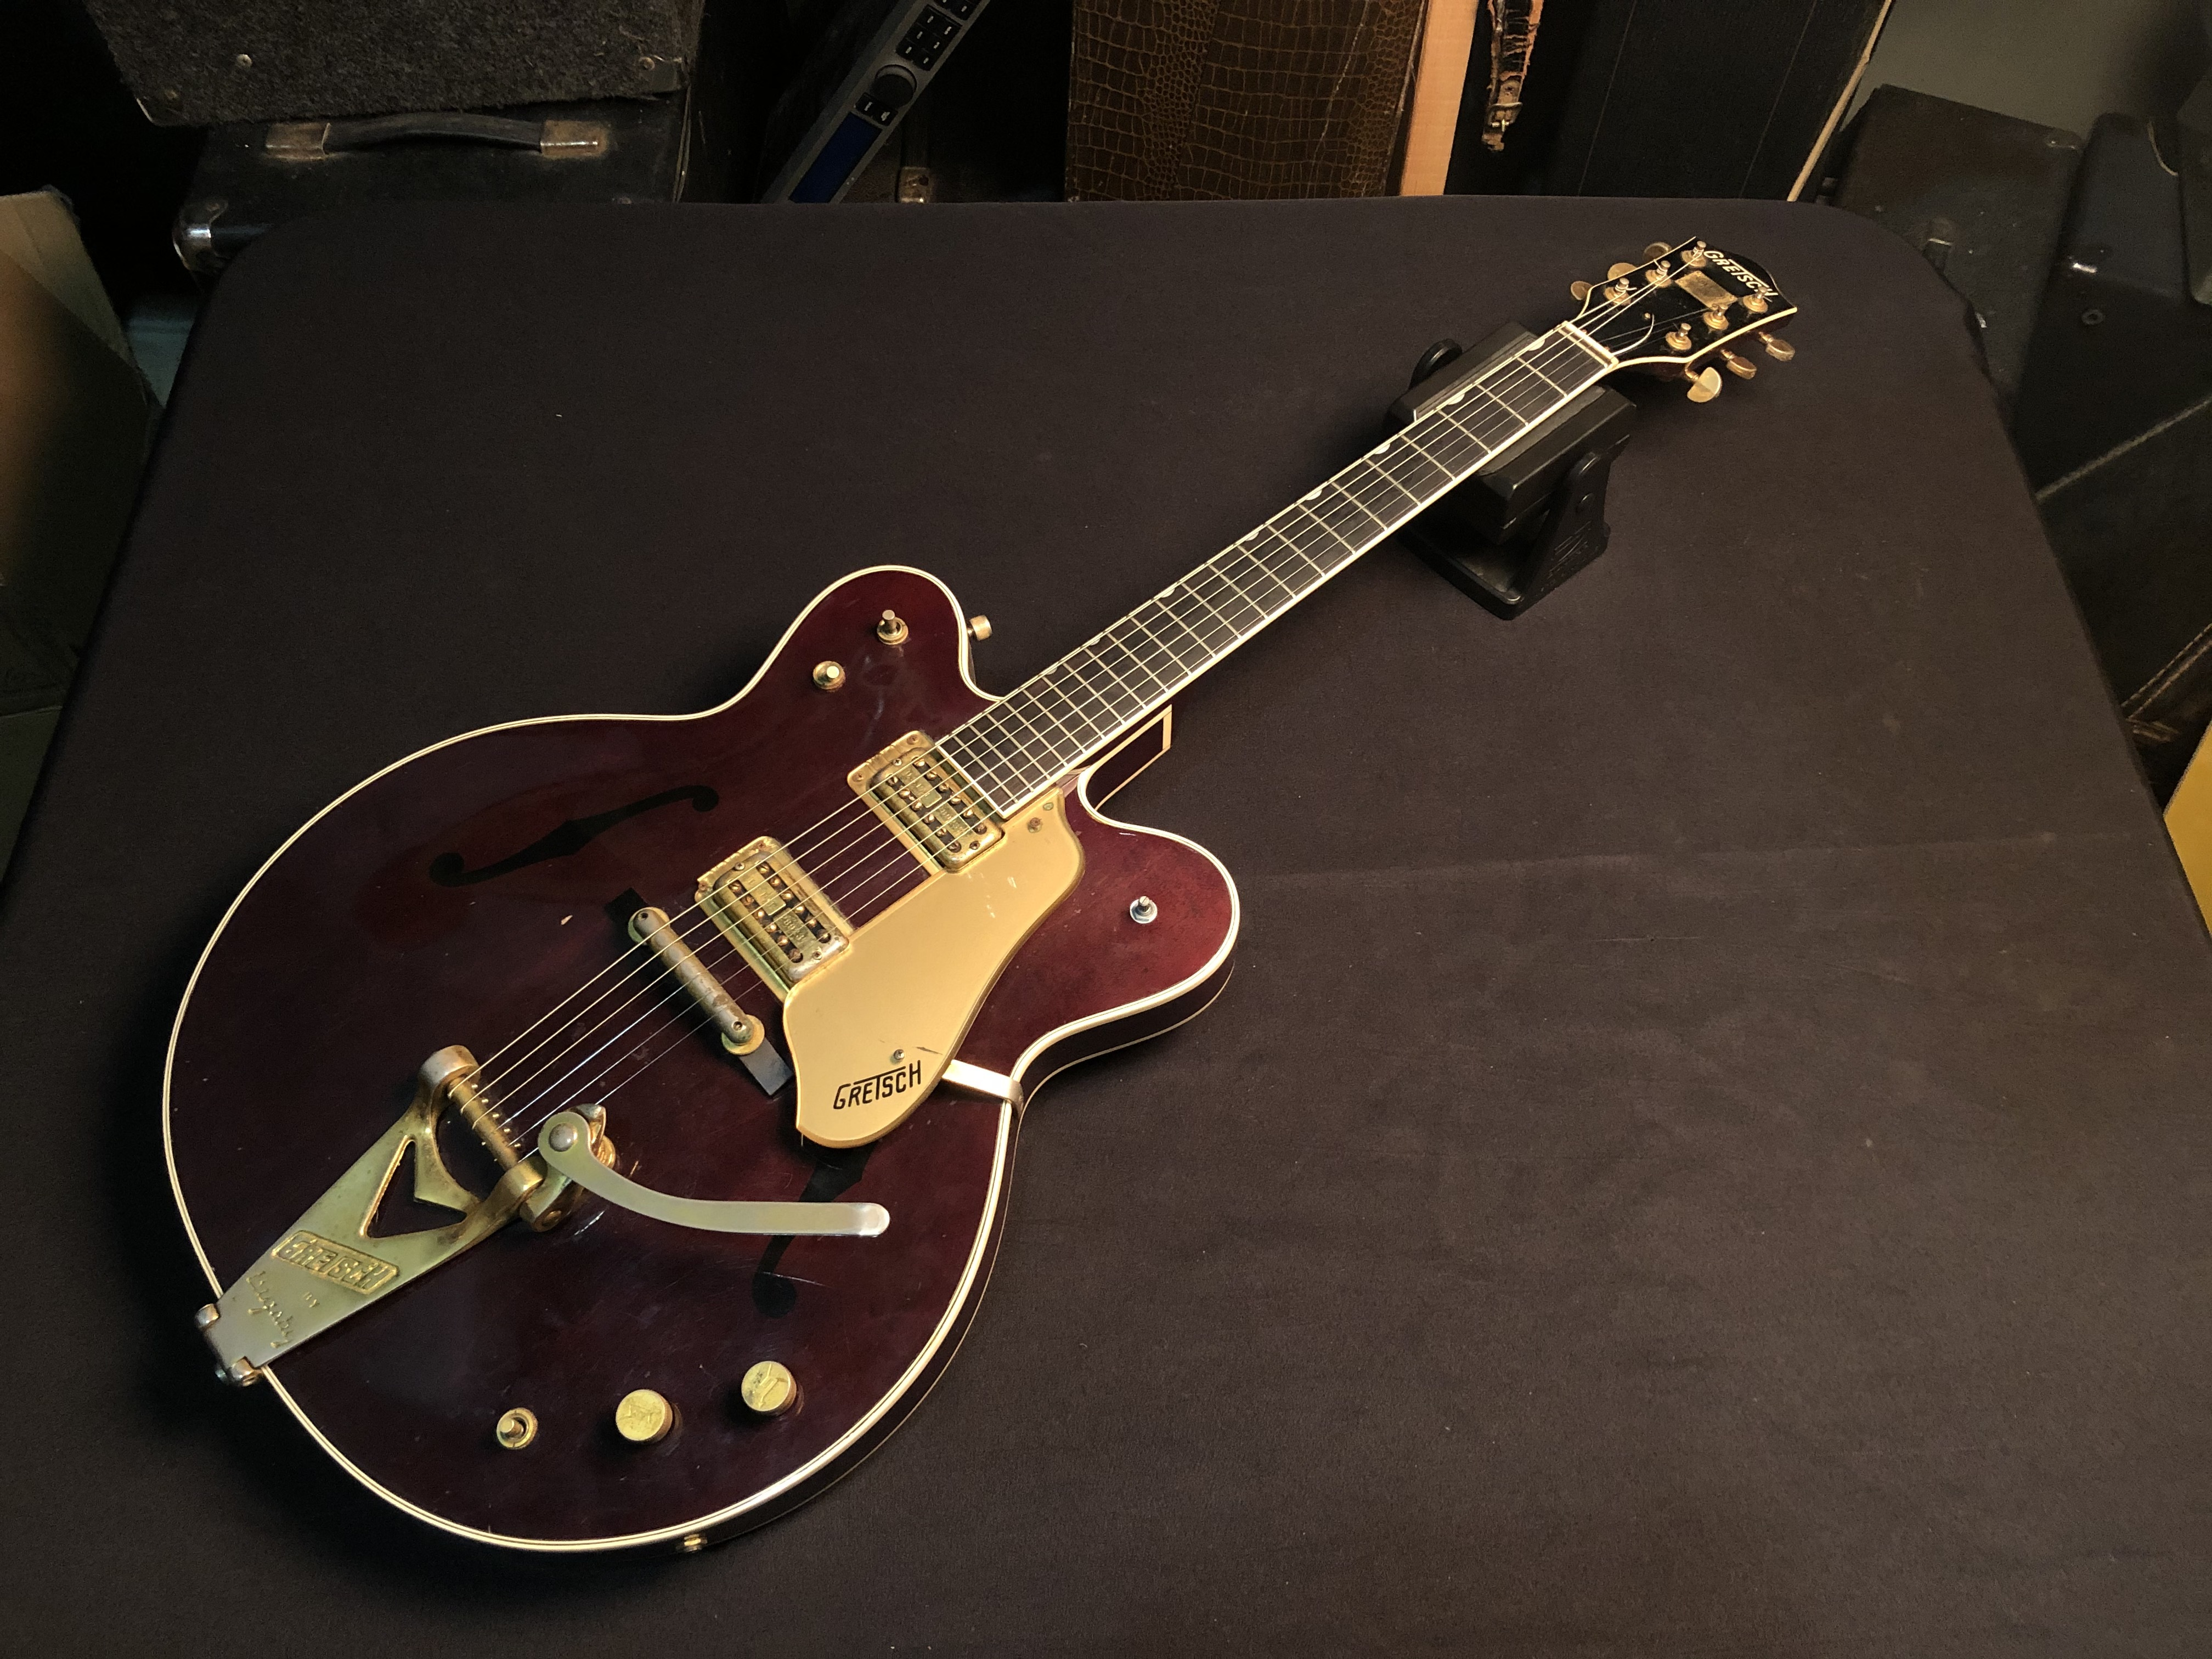 GRETSCH -1962 COUNTRY CLASSIC REISSUE - HEAVILY WORN ELECTRIC GUITAR